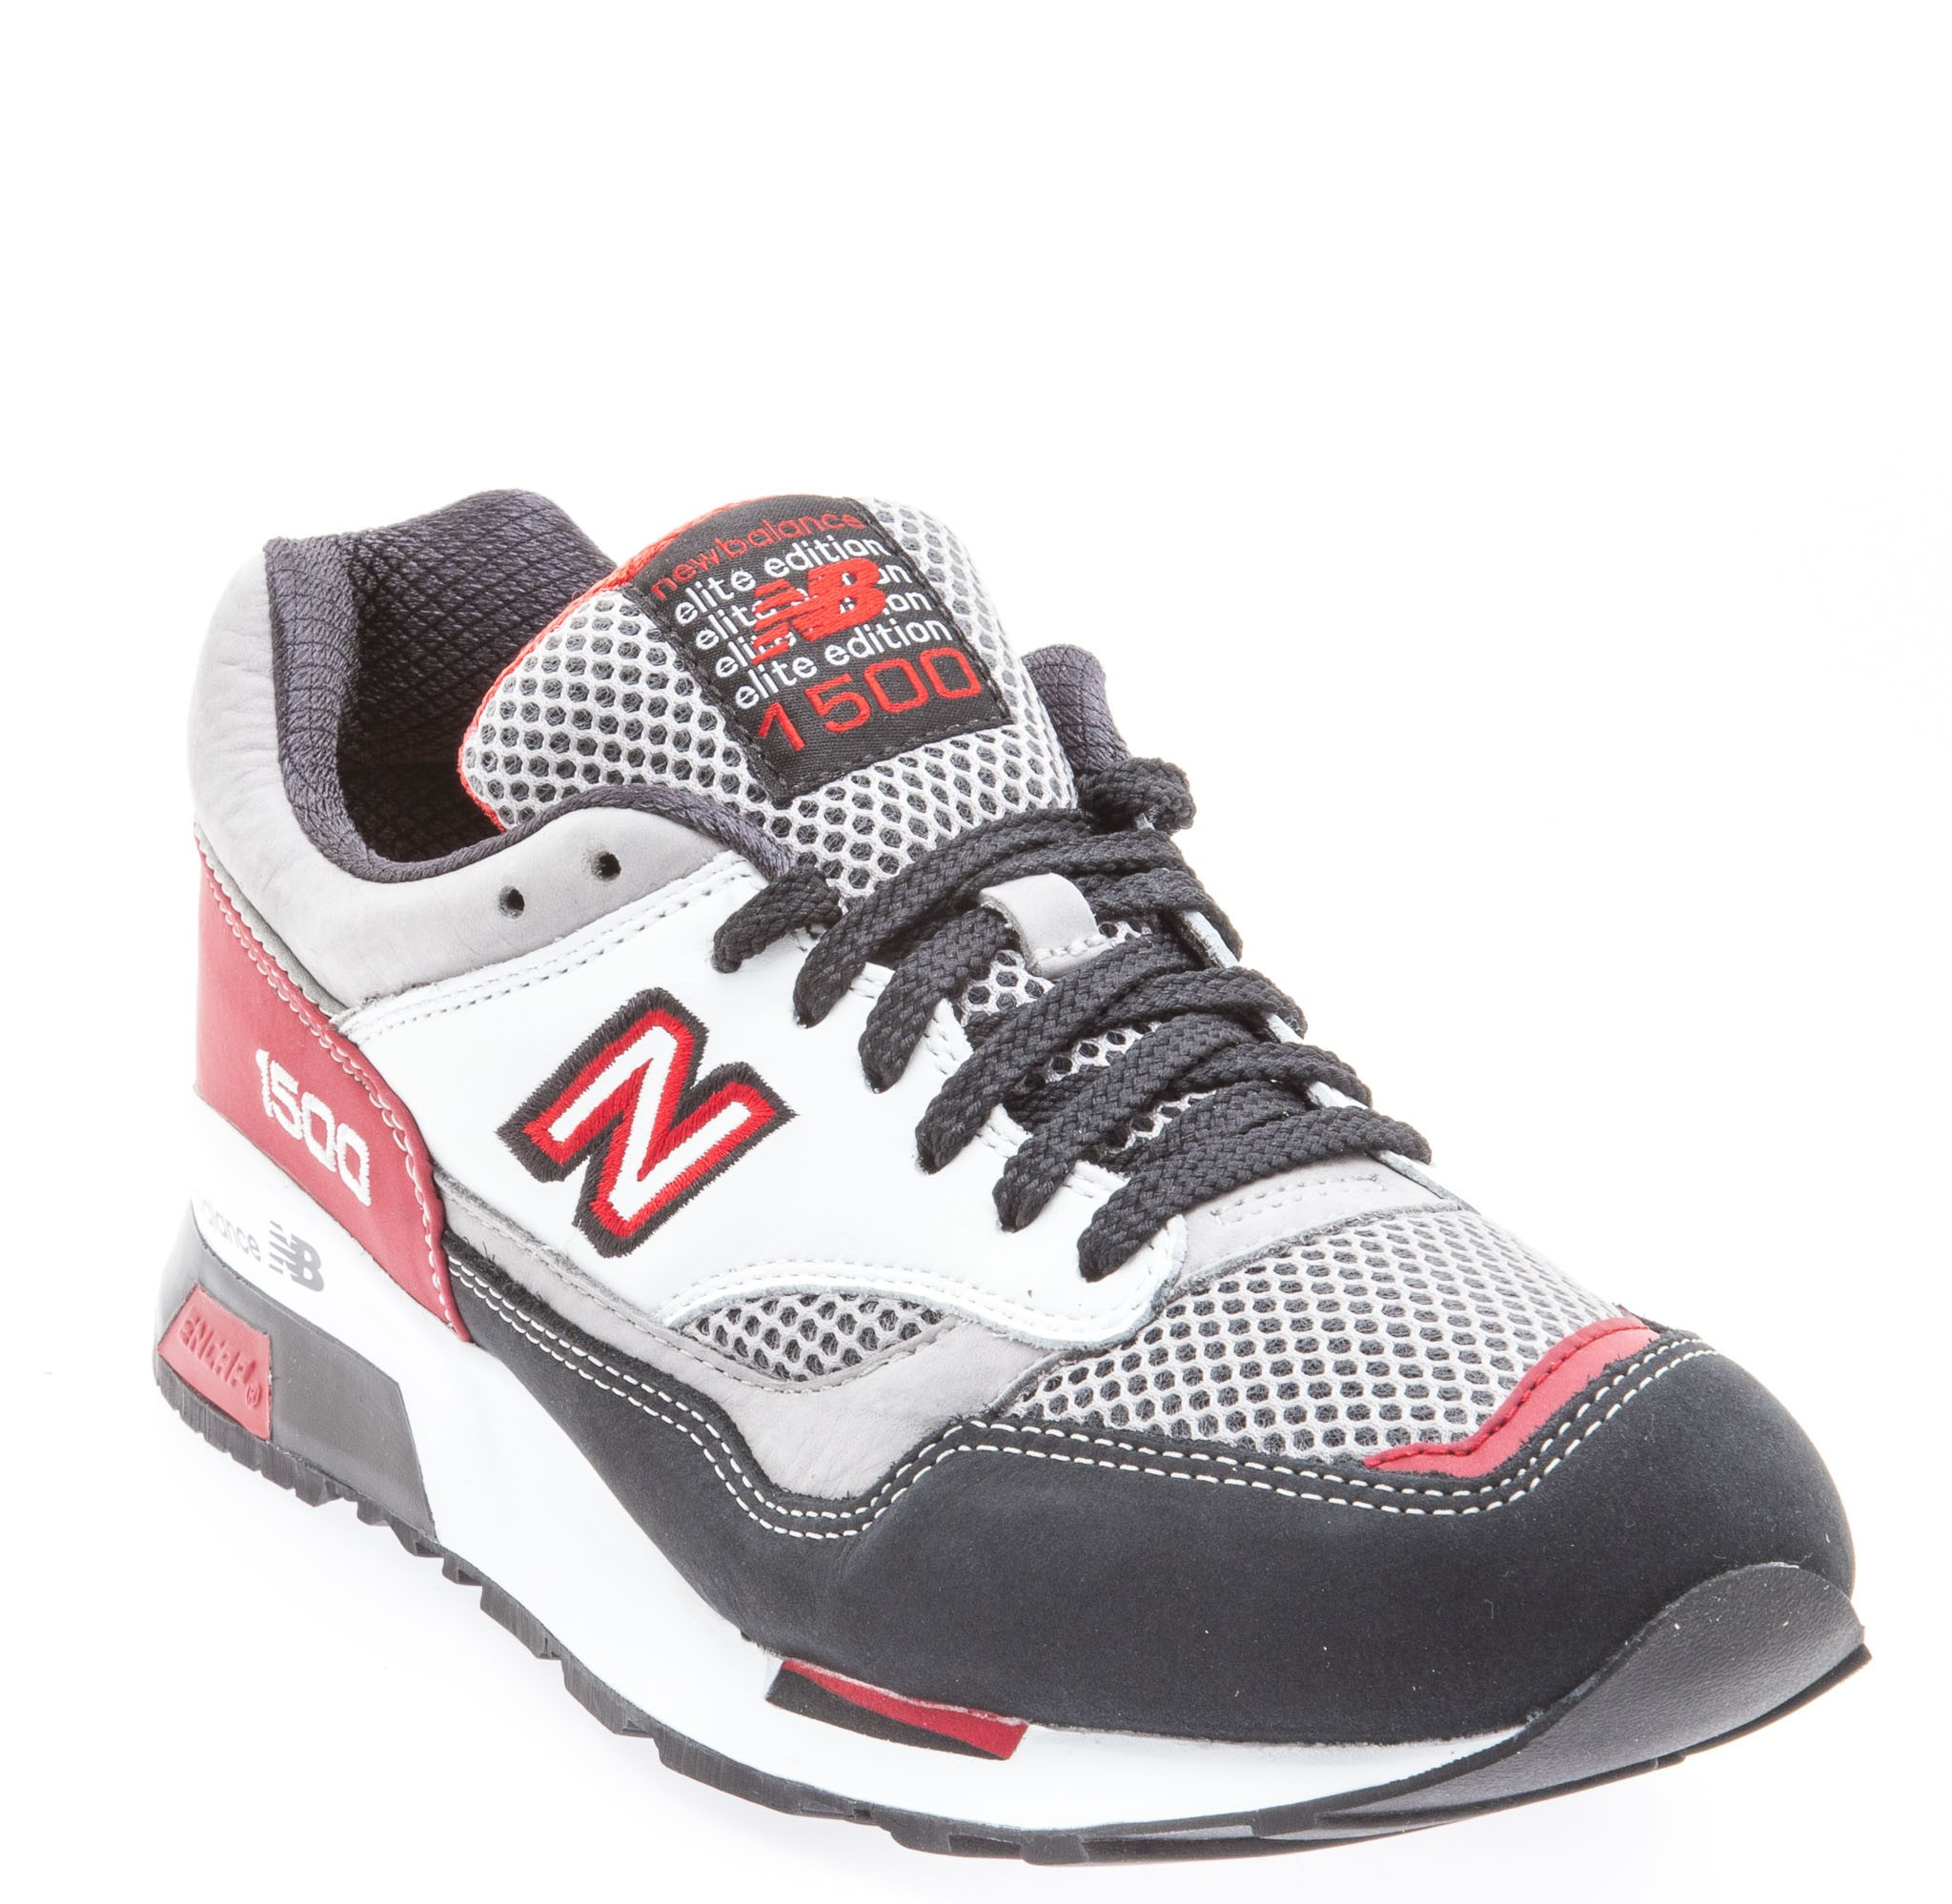 Homme New Balance 1500 Elite Rider's Club Chaussures Anthracite Gris Rouge